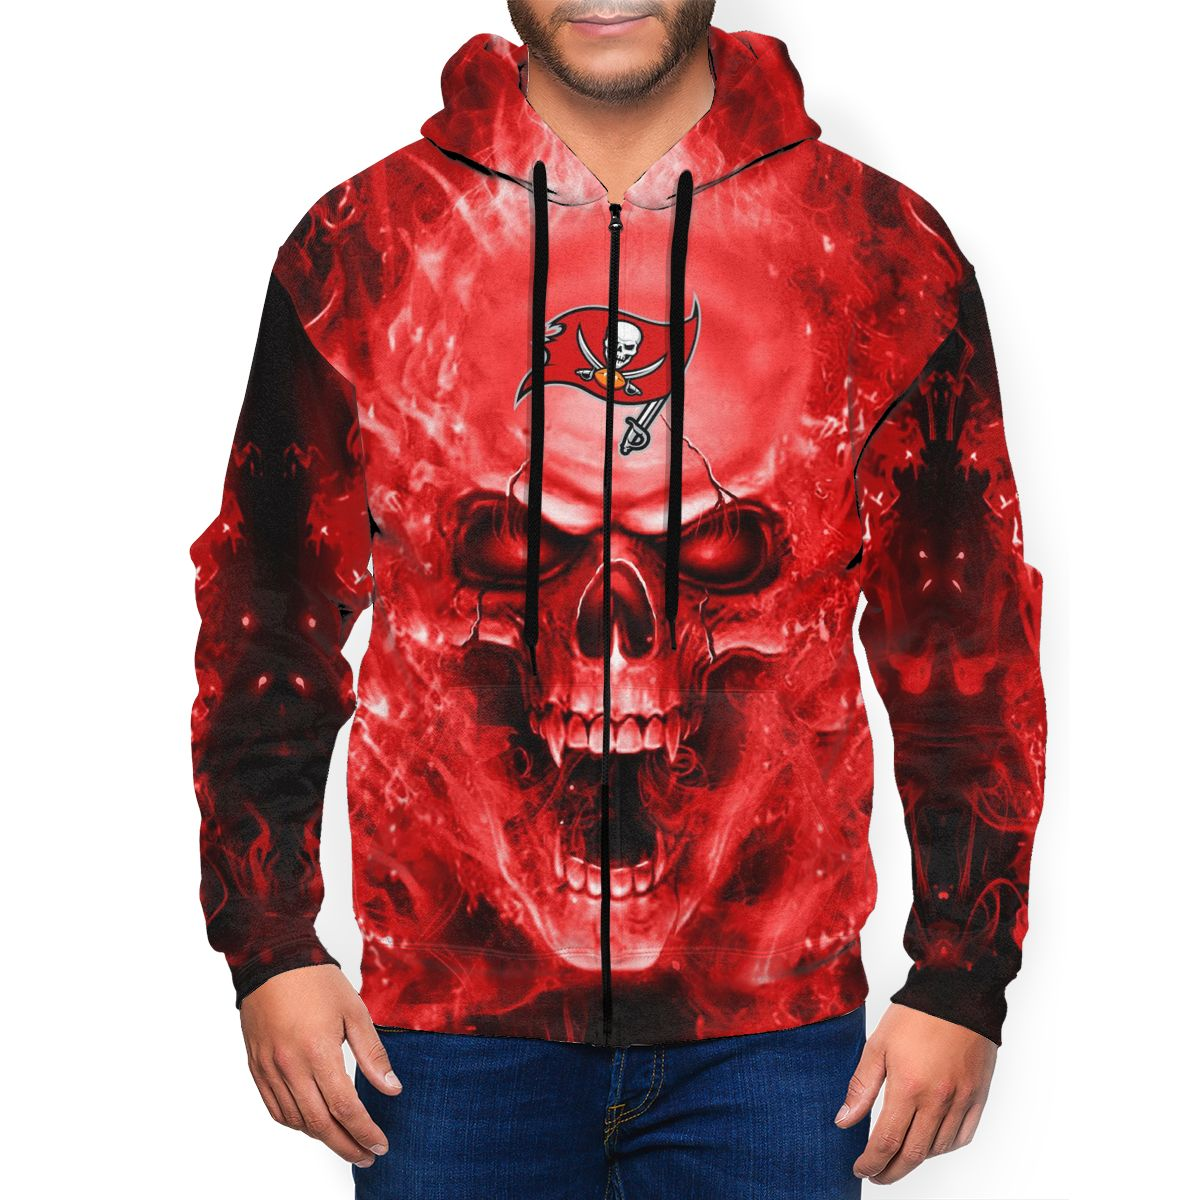 3D Skull Buccaneers Men's Zip Hooded Sweatshirt